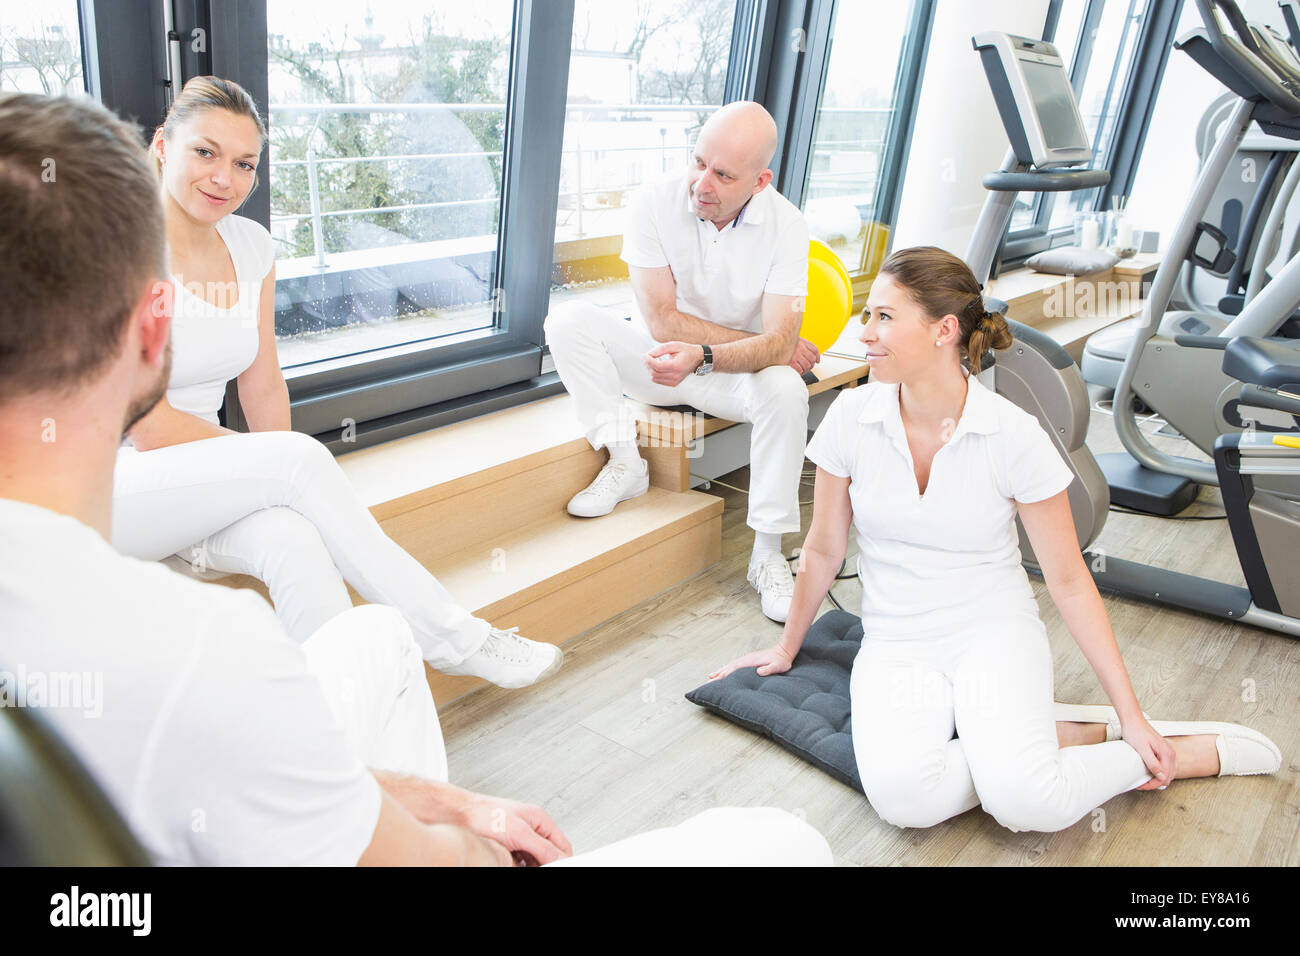 Physiotherapists having a meeting - Stock Image